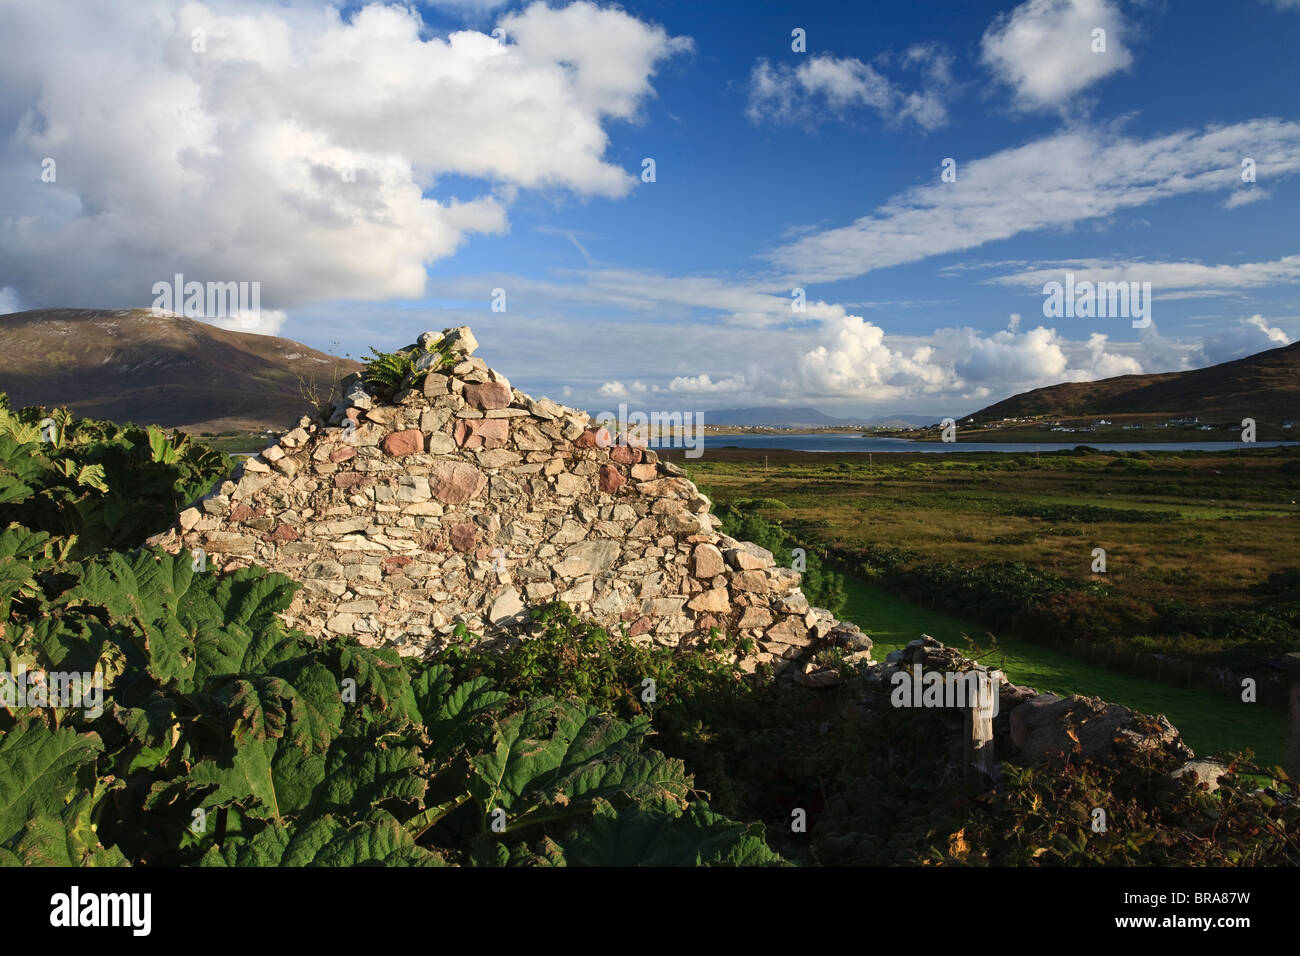 Deserted cottage on Achill Island, County Mayo, Ireland - Stock Image